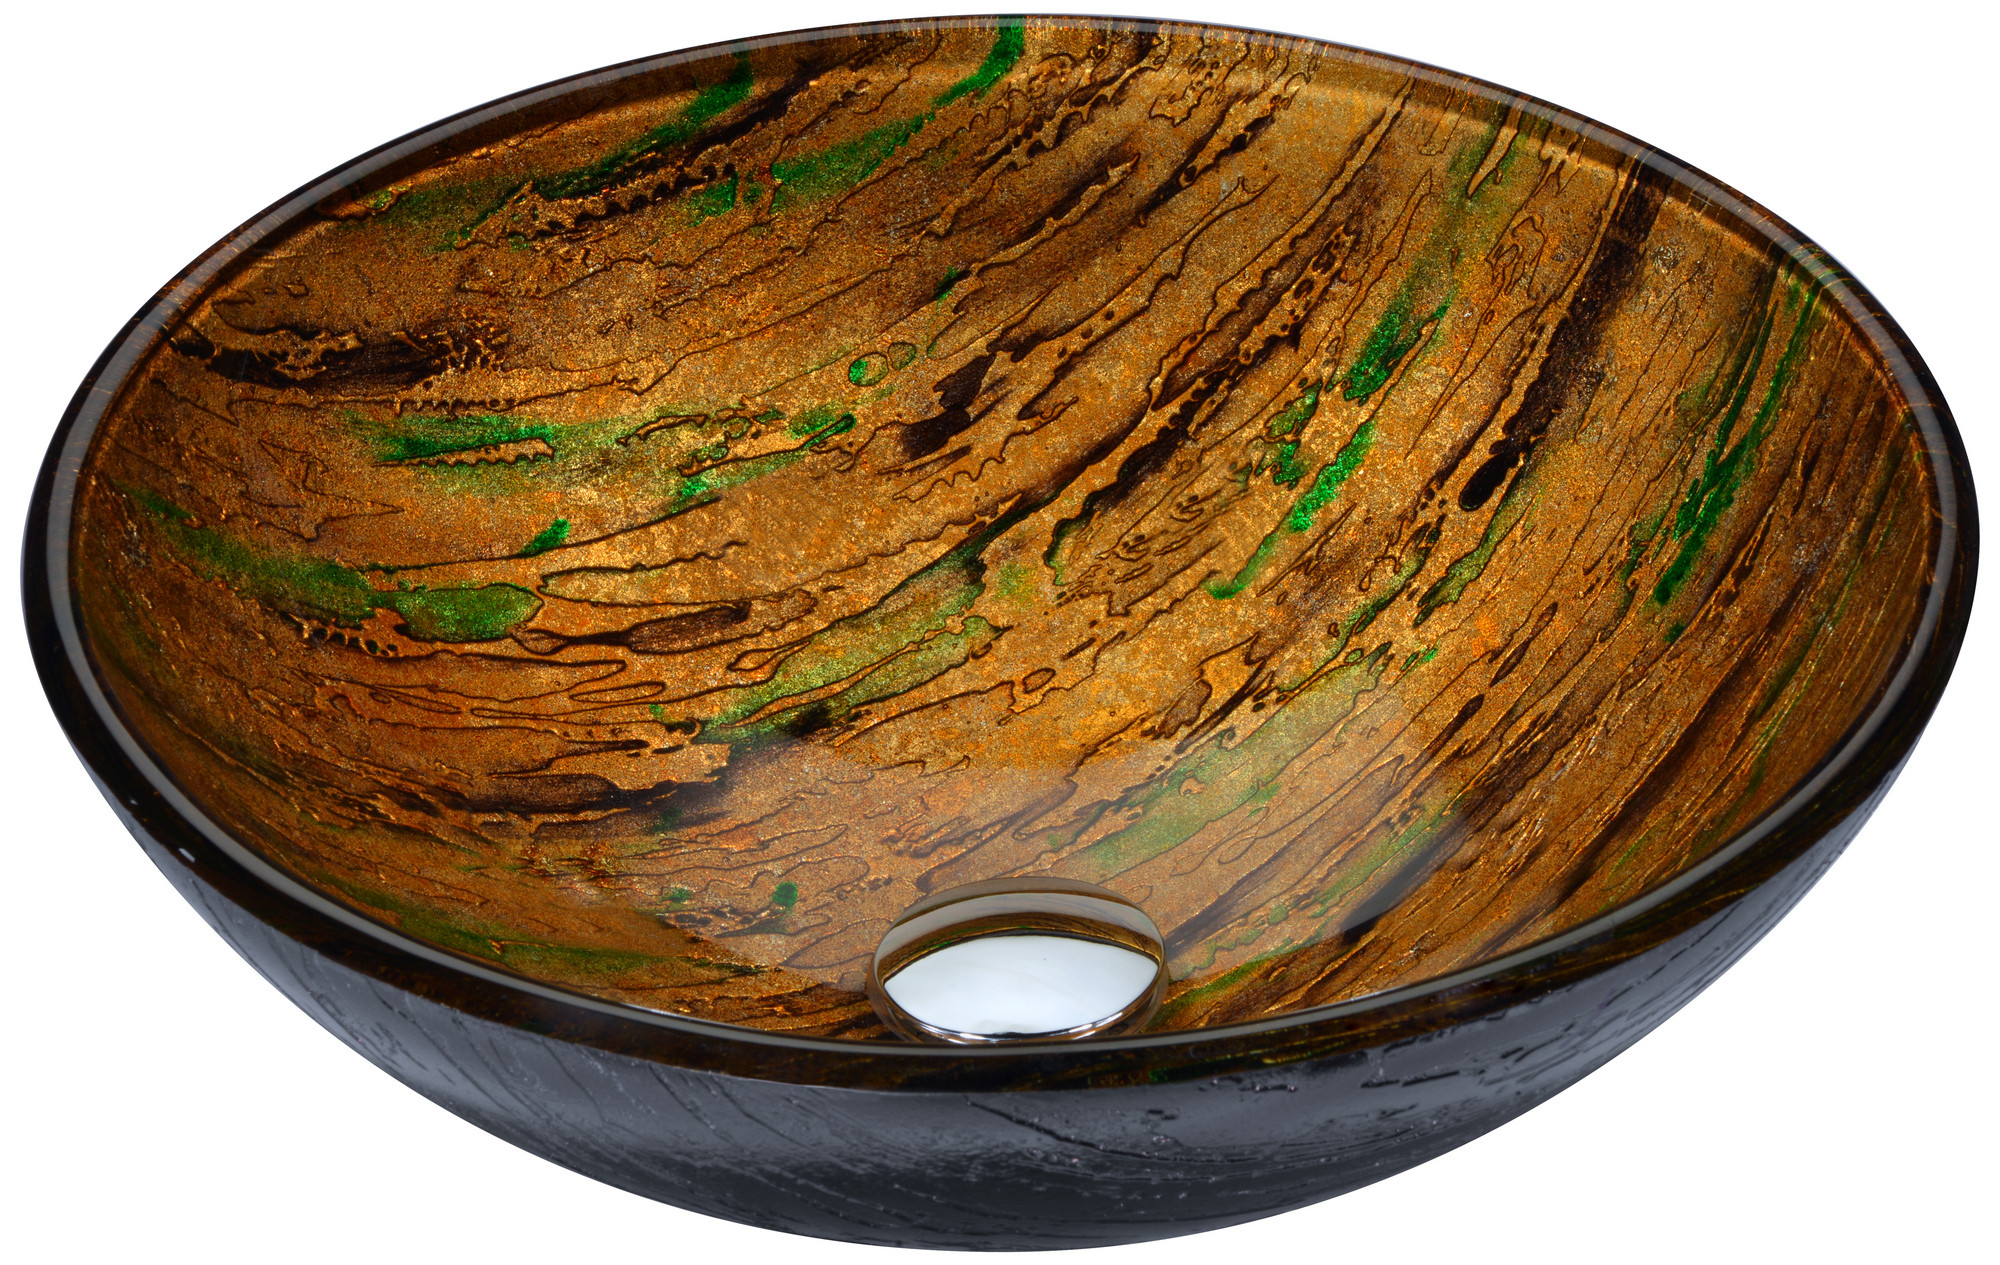 ANZZI LS-AZ206 Nile Series Deco-Glass Vessel Sink In Shifting Earth